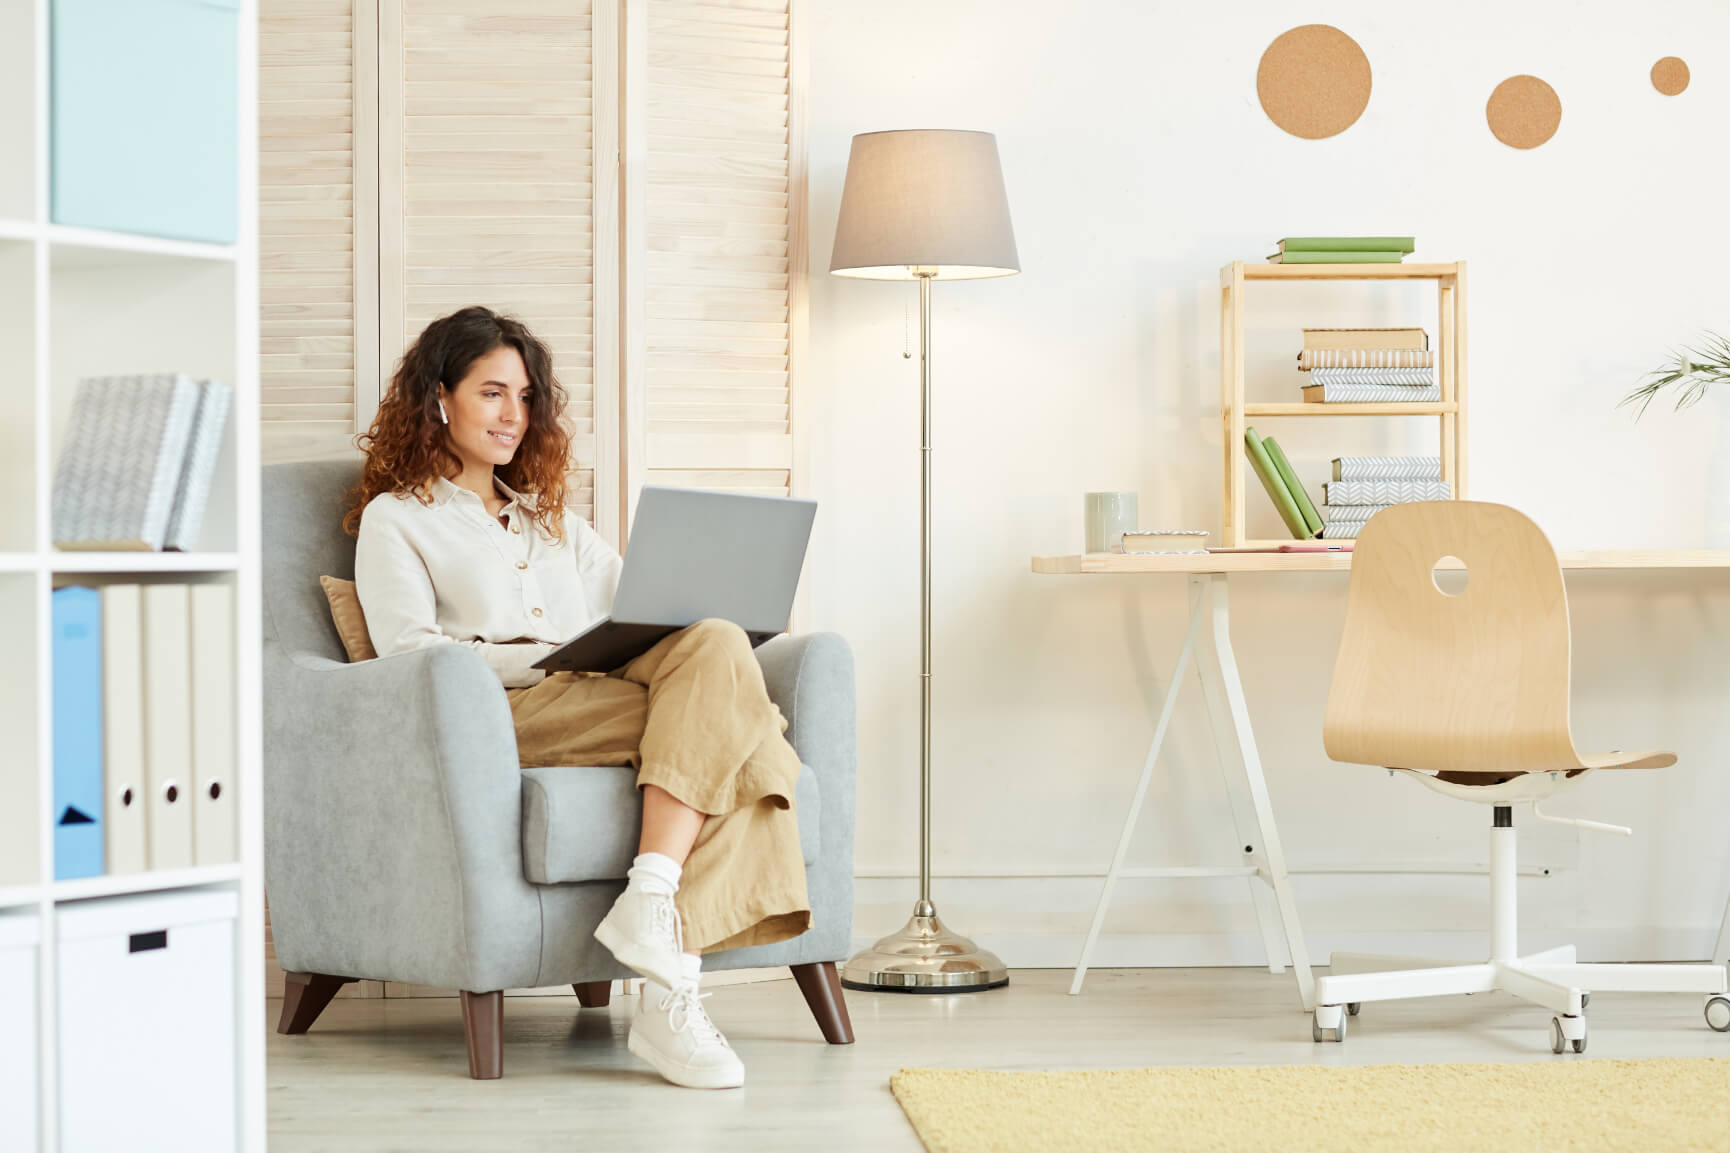 Woman sitting on a couch while using her laptop in her working space